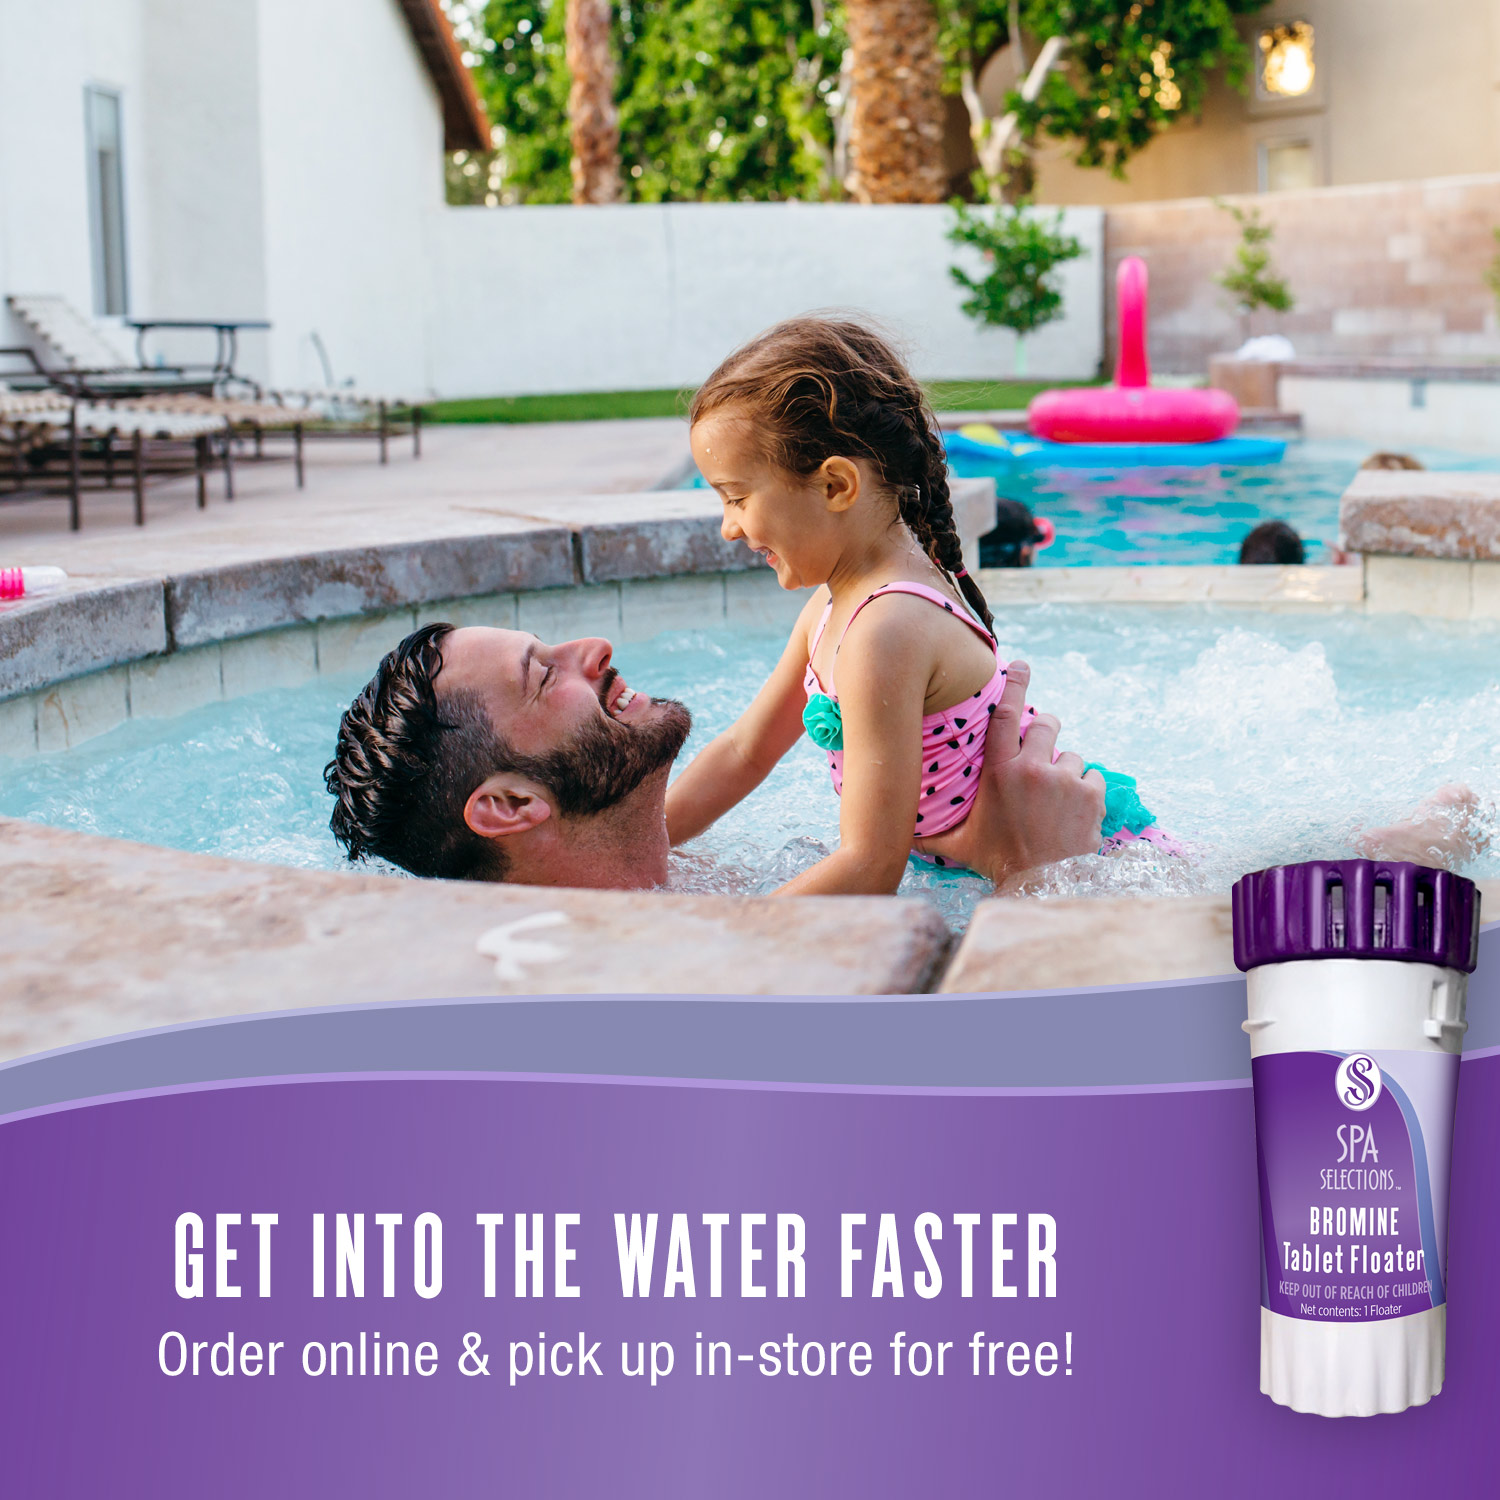 Father and daughter enjoying outdoor hot tub. Get into the water faster with Spa Selections bromine tablet floater, order online and pick up in-store for free!